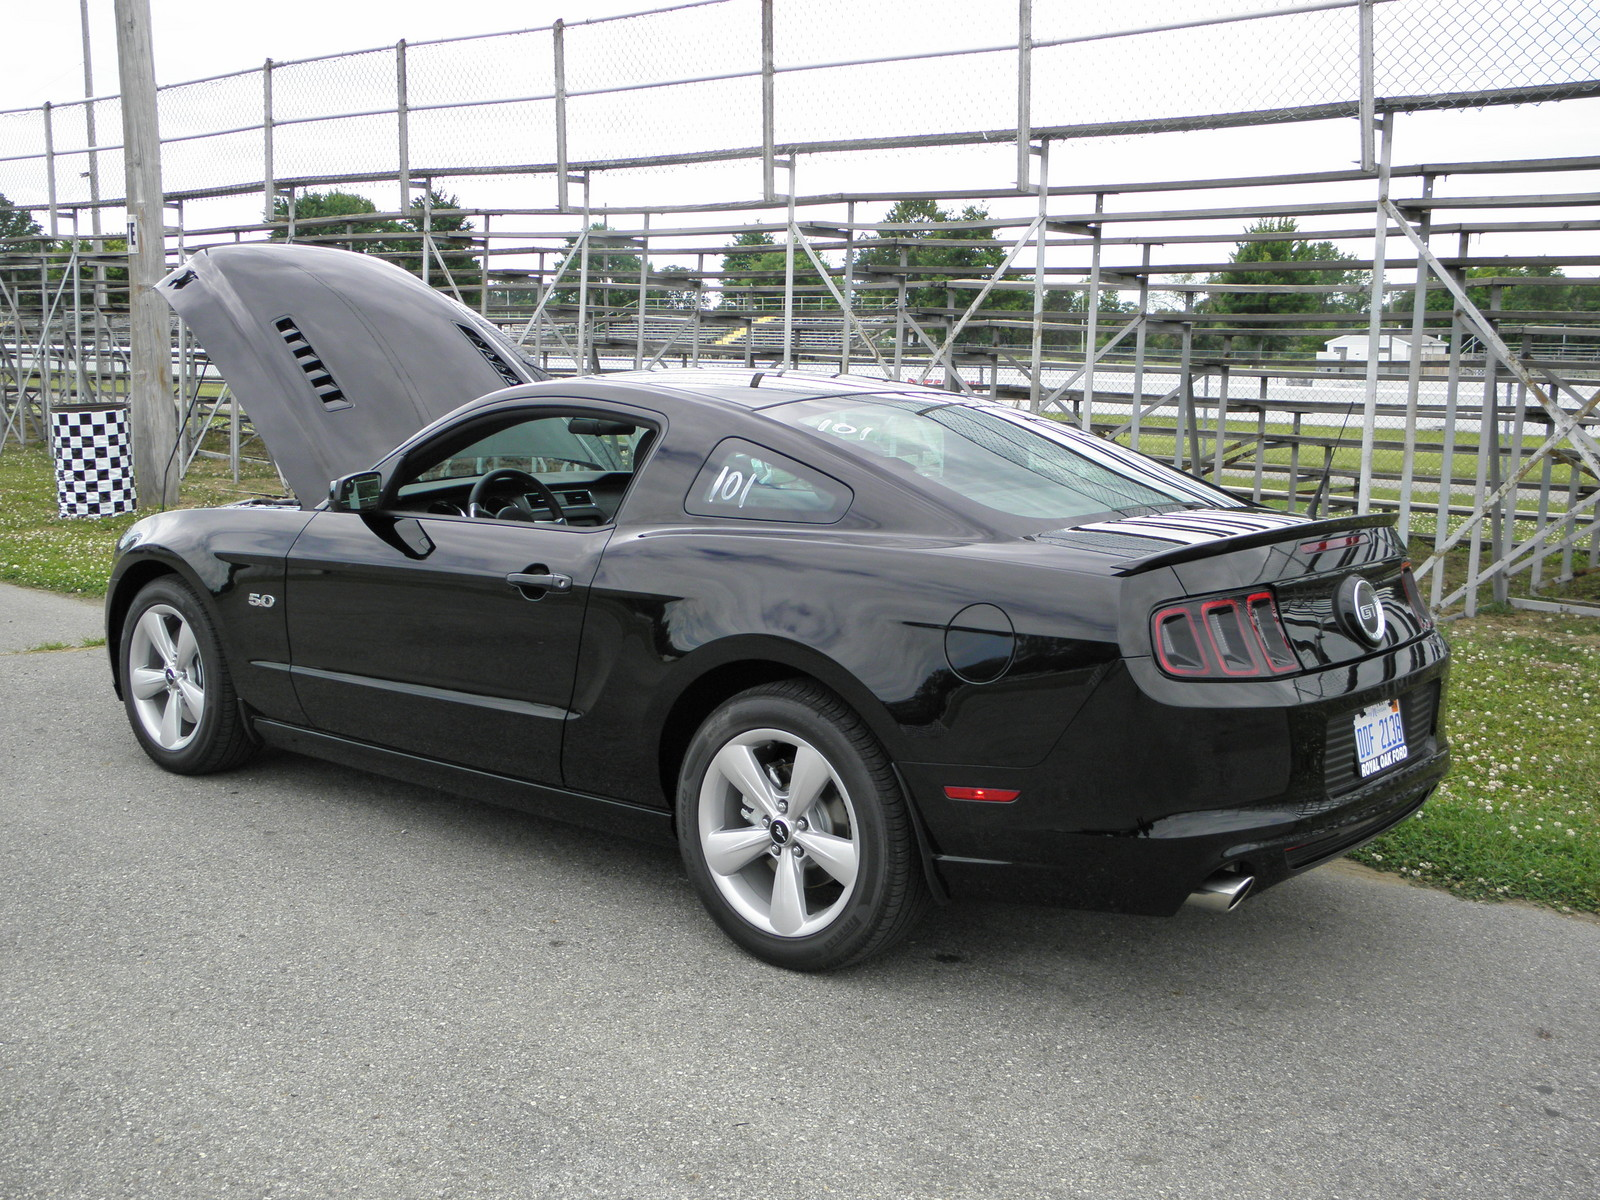 2014 black ford mustang gt picture mods upgrades